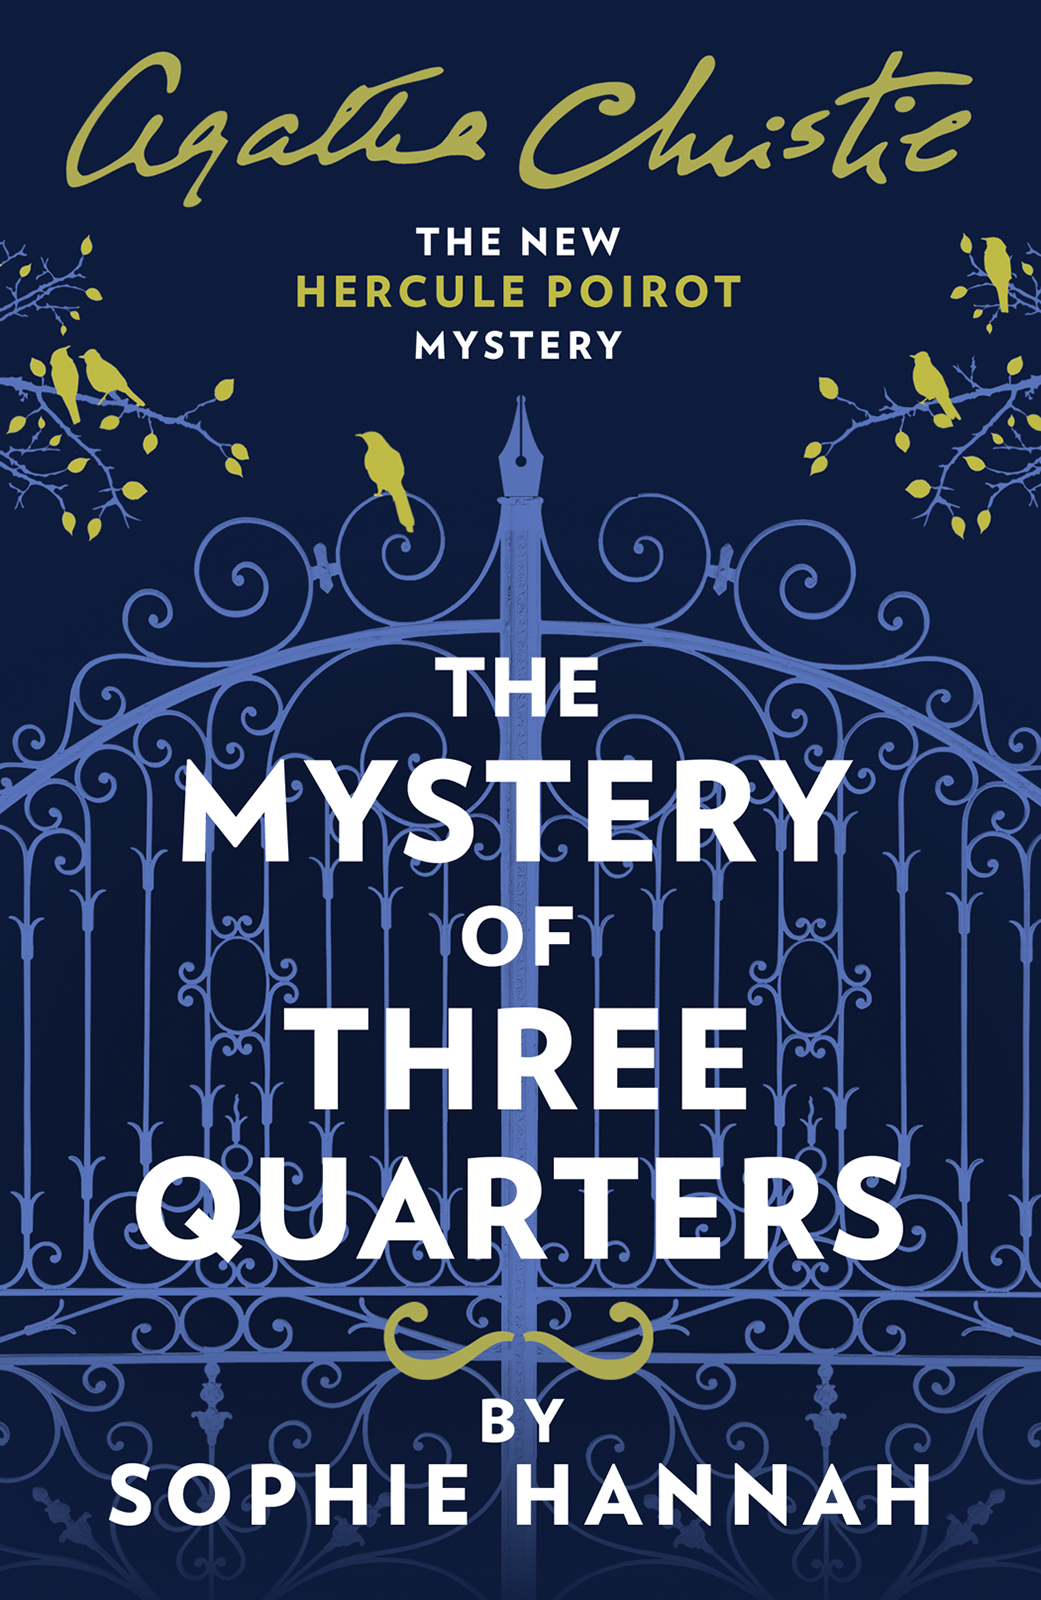 Agatha Christie The Mystery of Three Quarters: The New Hercule Poirot Mystery h 265 4ch cctv system 5mp 3mp 2mp metal outdoor ip camera 4ch 1080p poe nvr kit alarm email night vision app pc remote